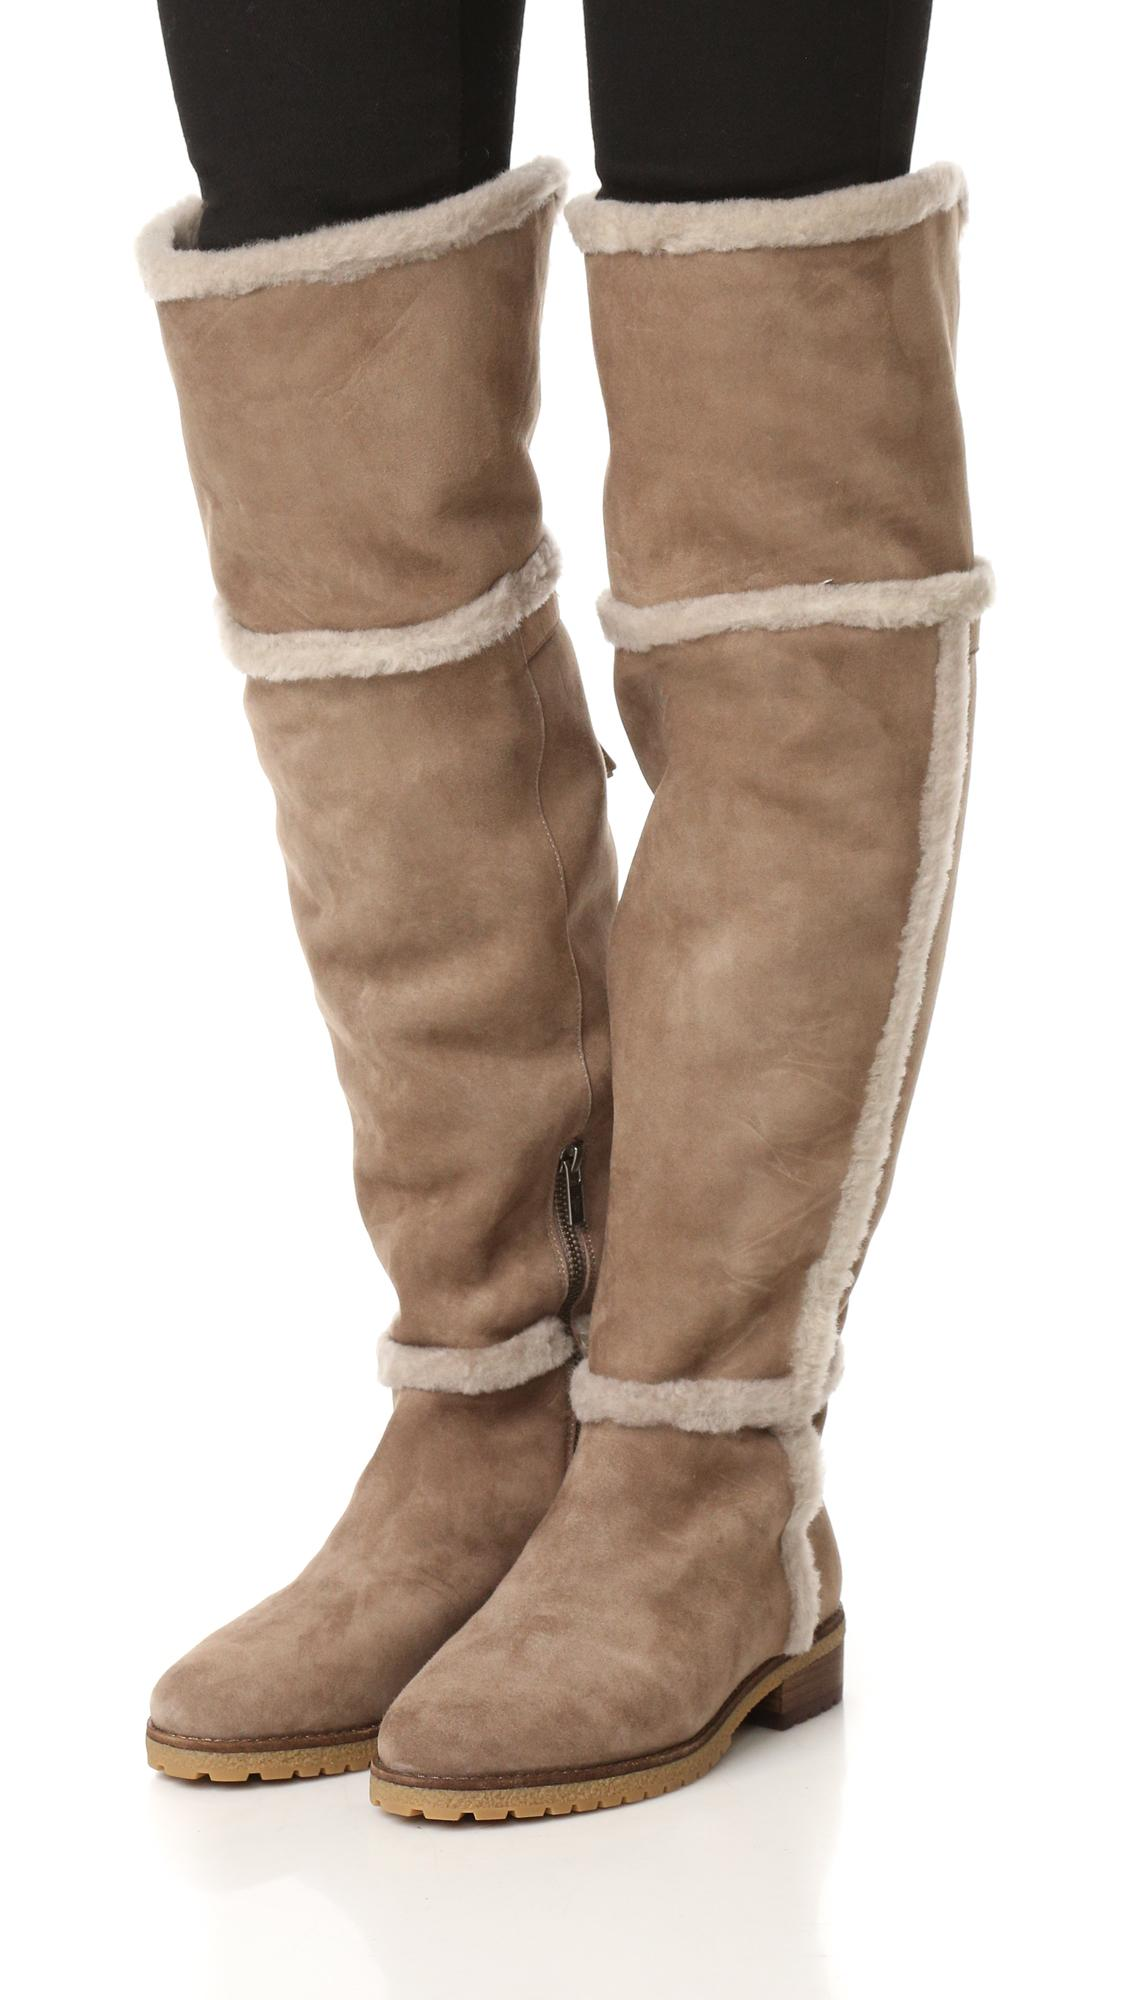 Lyst Frye Tamara Shearling Over The Knee Boots In Brown